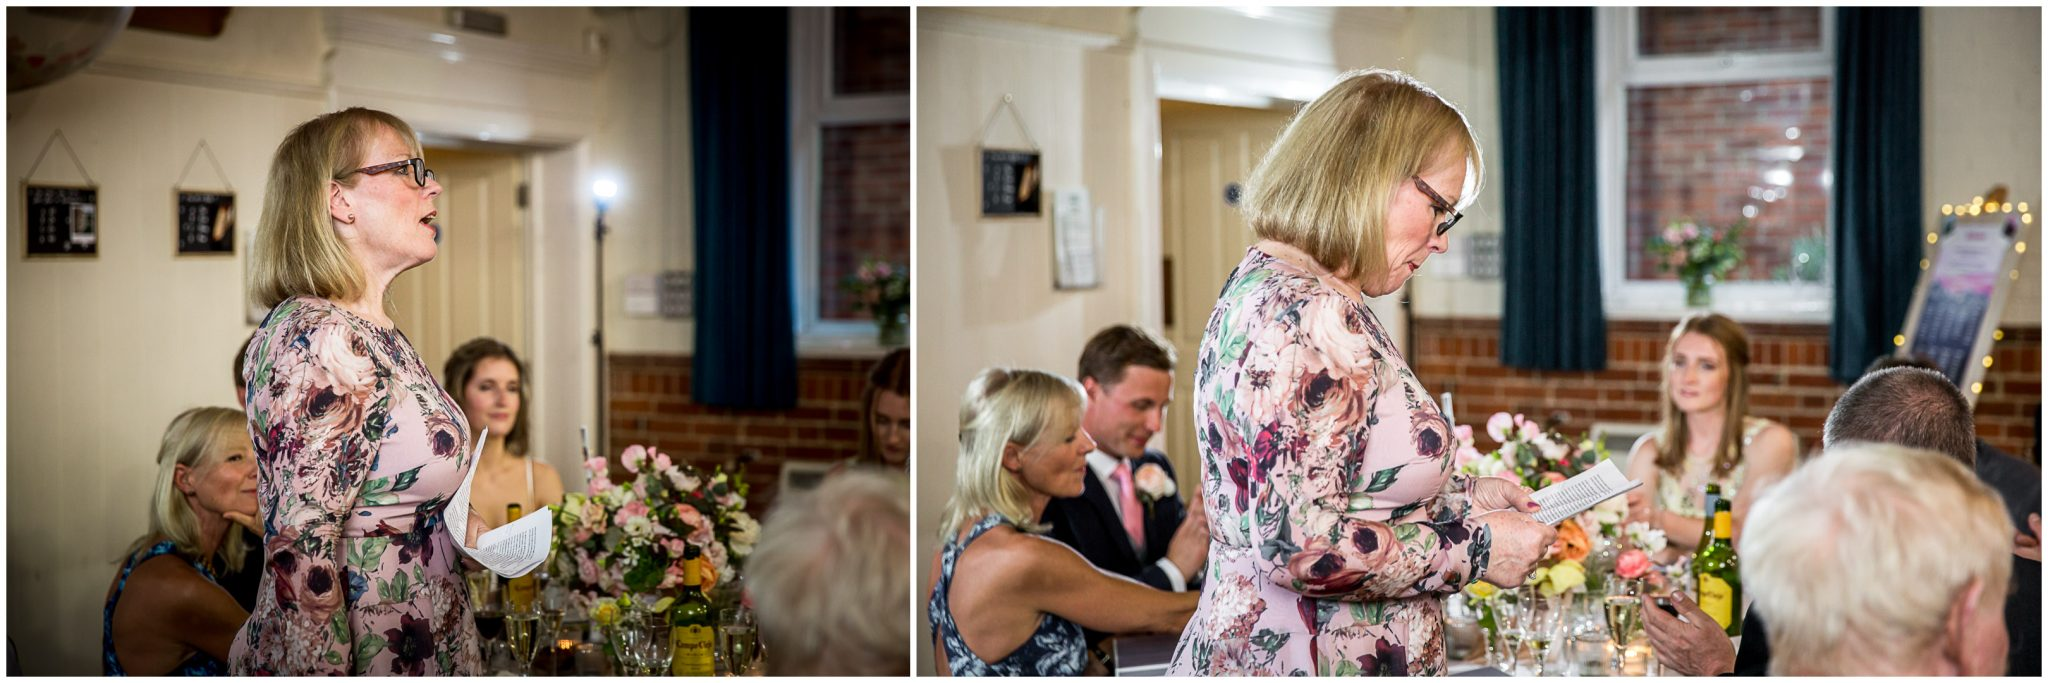 mother of the bride gives a wedding speech